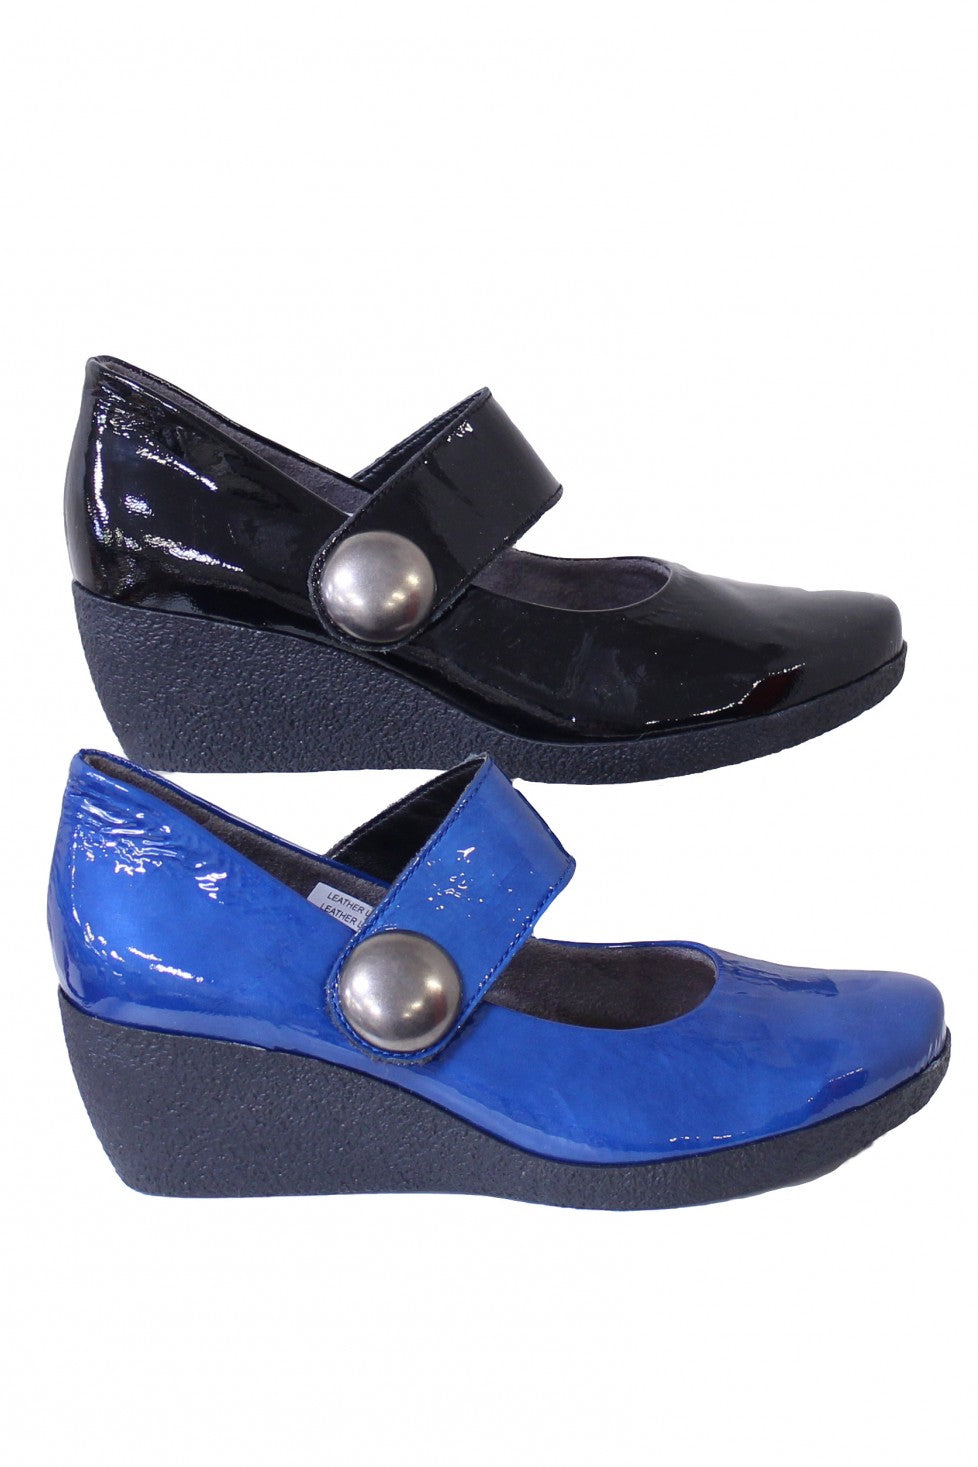 Hirica-Shoe-with-Velcro-Fastening-style-and-grace